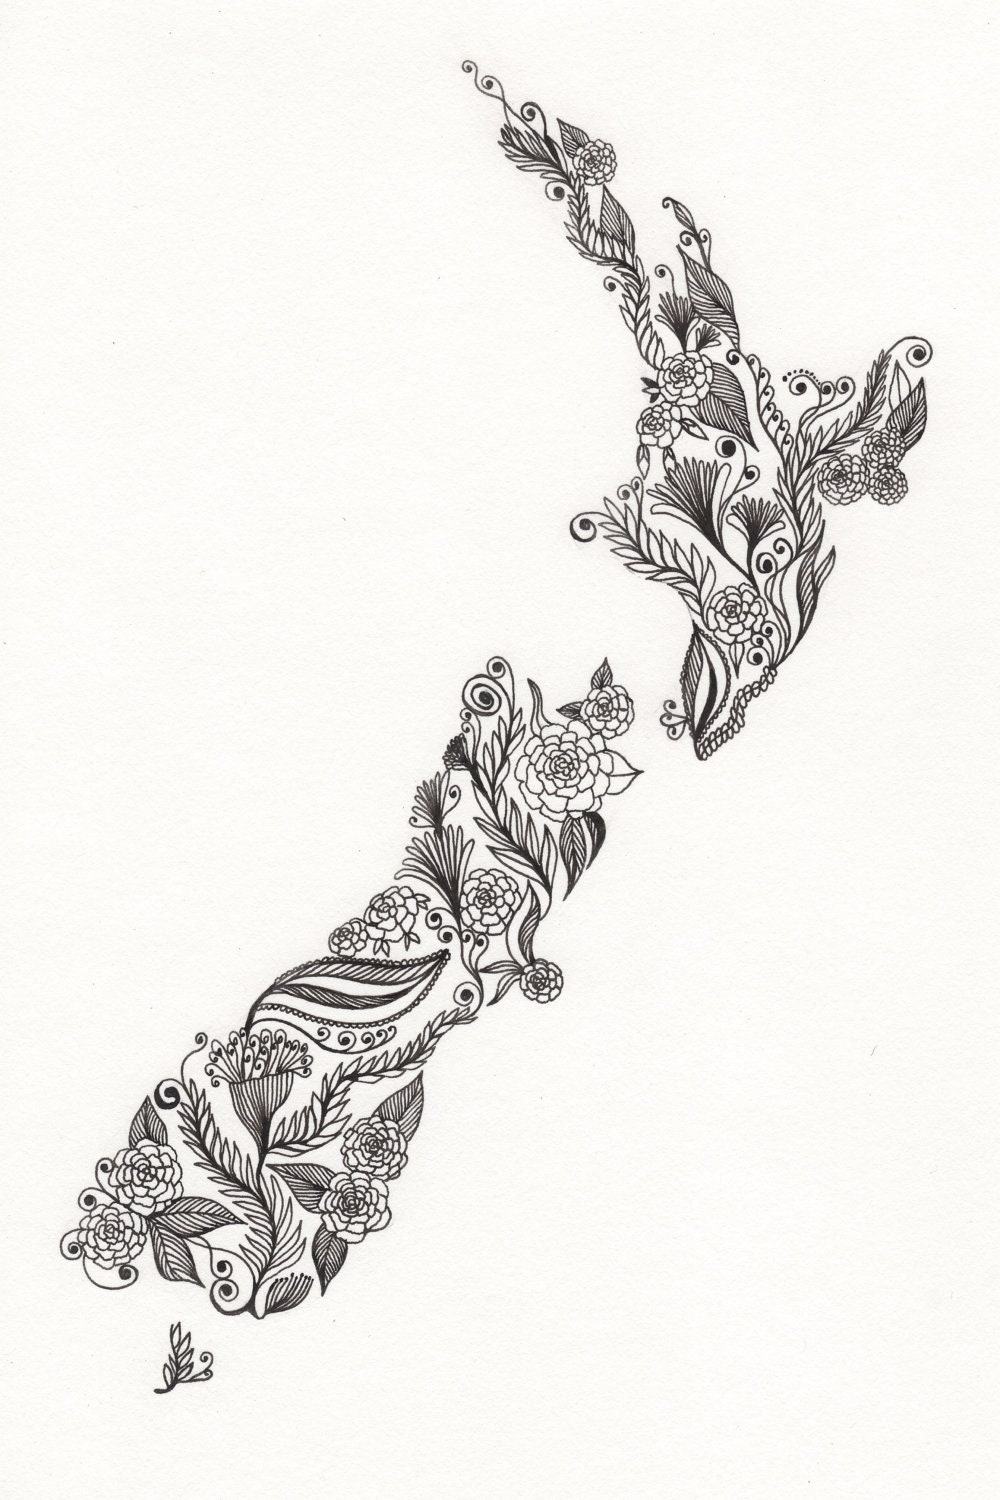 Line Drawing New Zealand Map : New zealand patterned art print by artbythelittleleaf